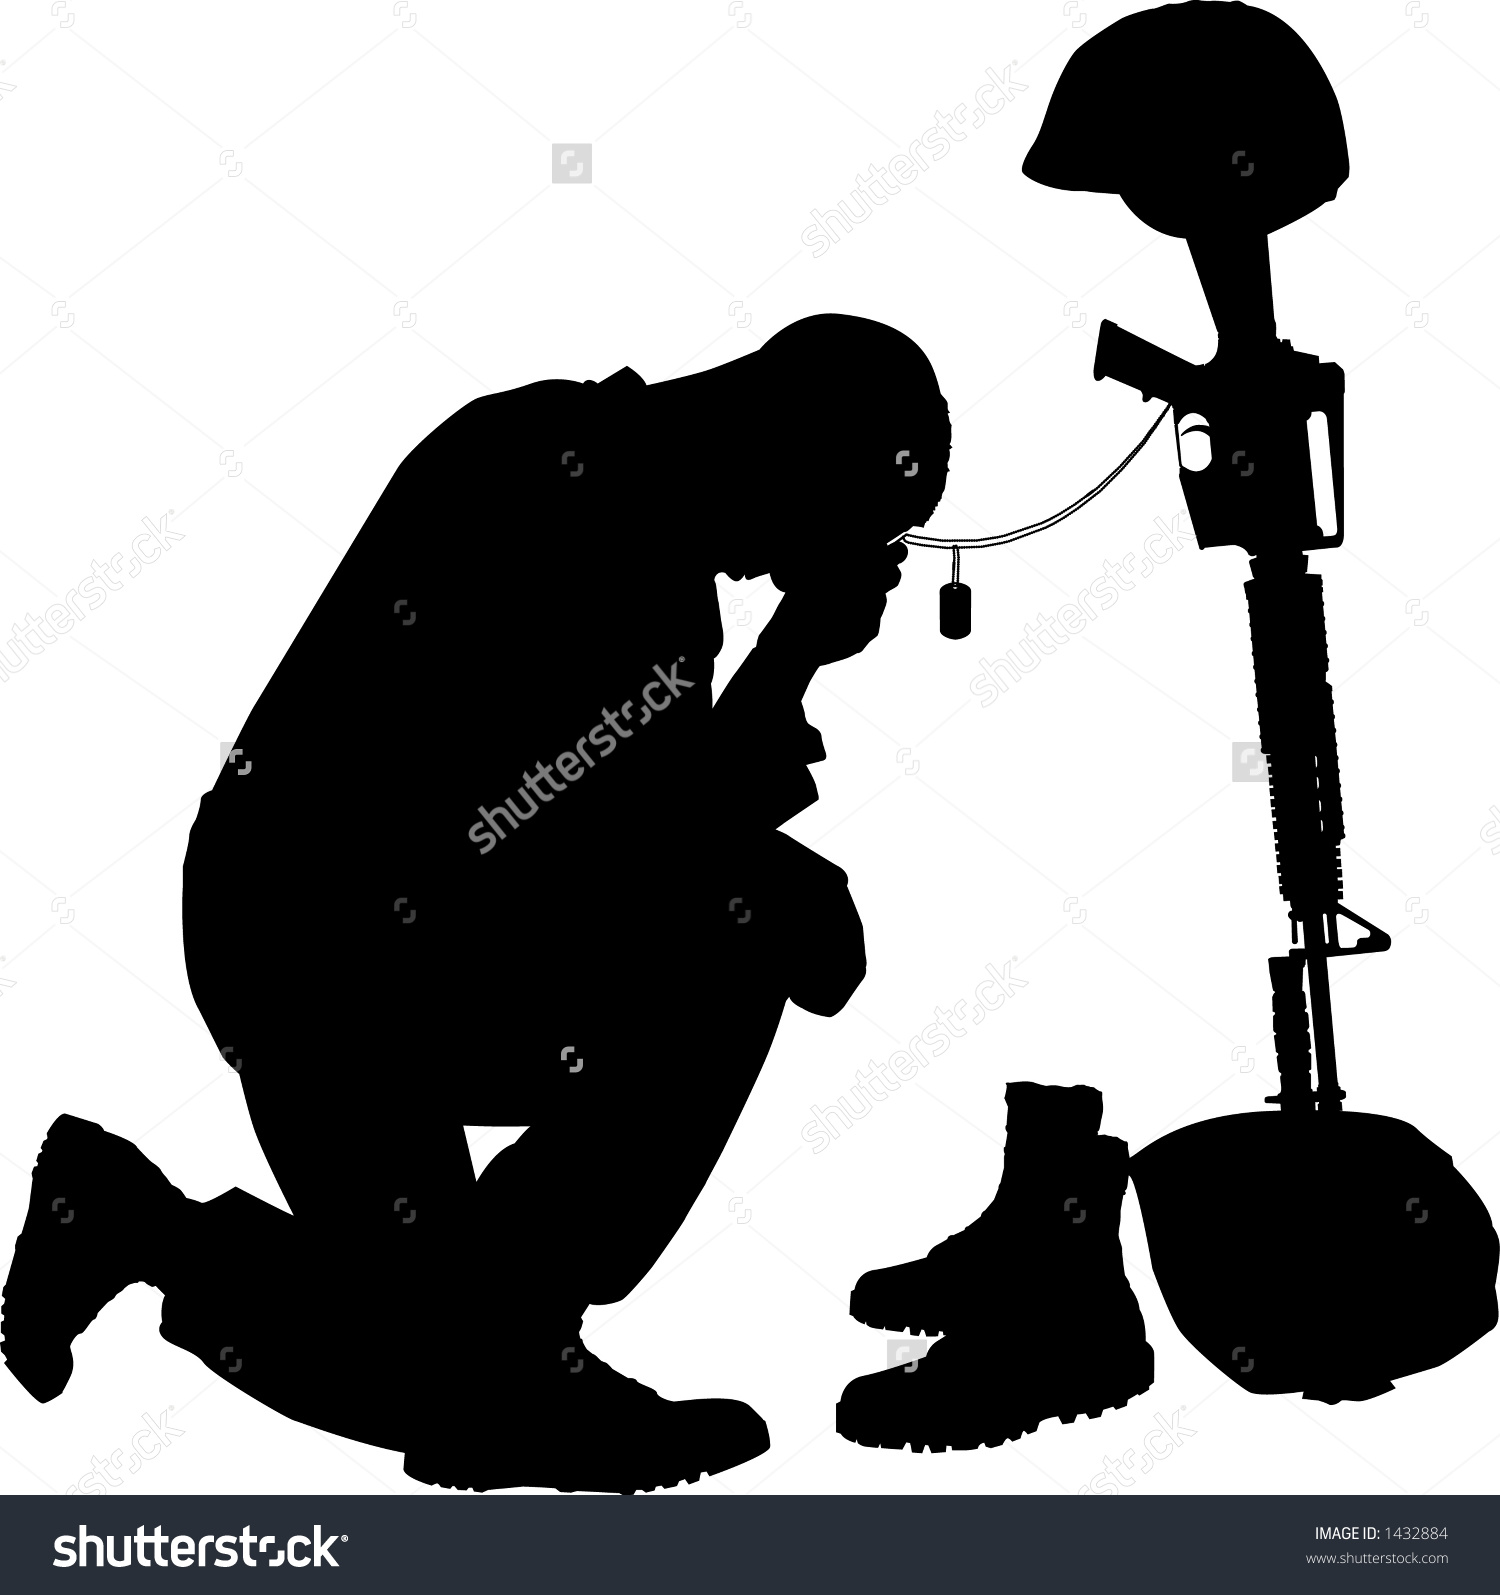 1500x1595 Soldier, Army, Military, Training And Exercise Silhouette